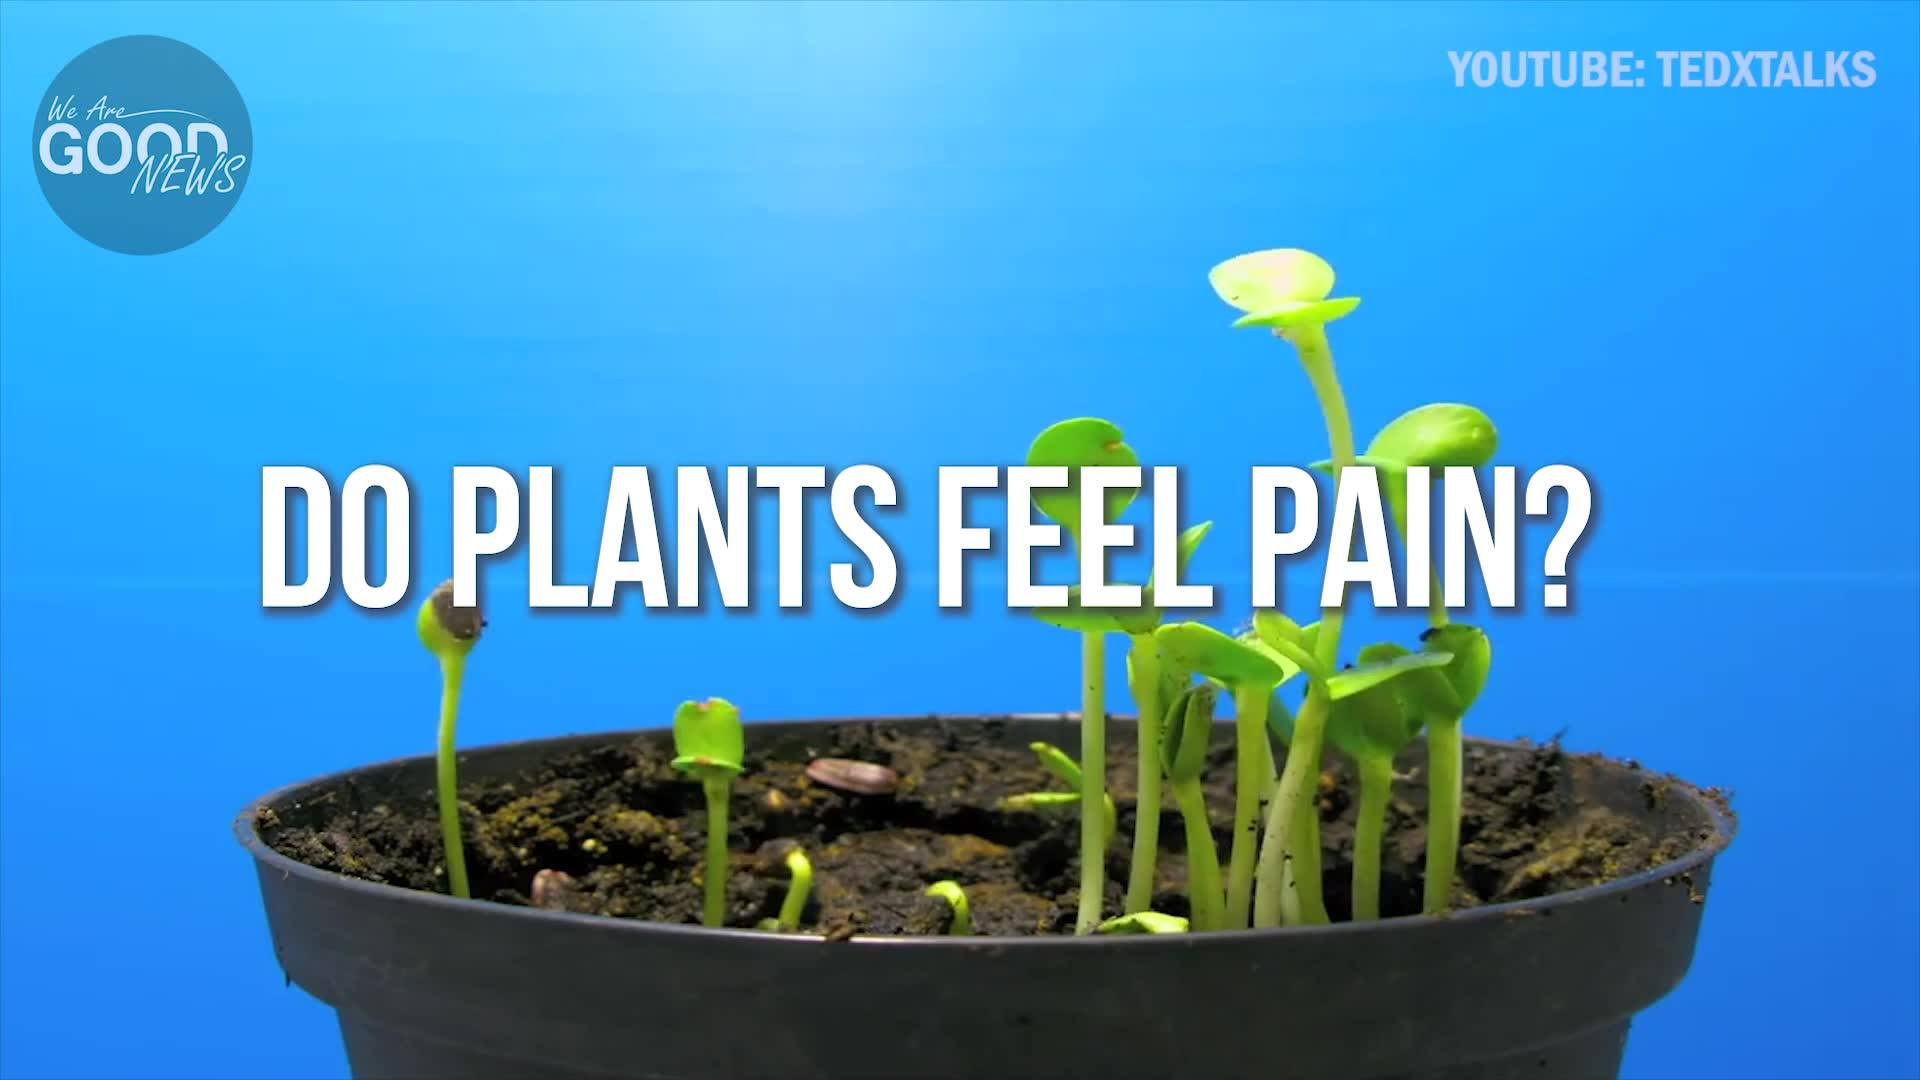 Can Plants Feel Pain?